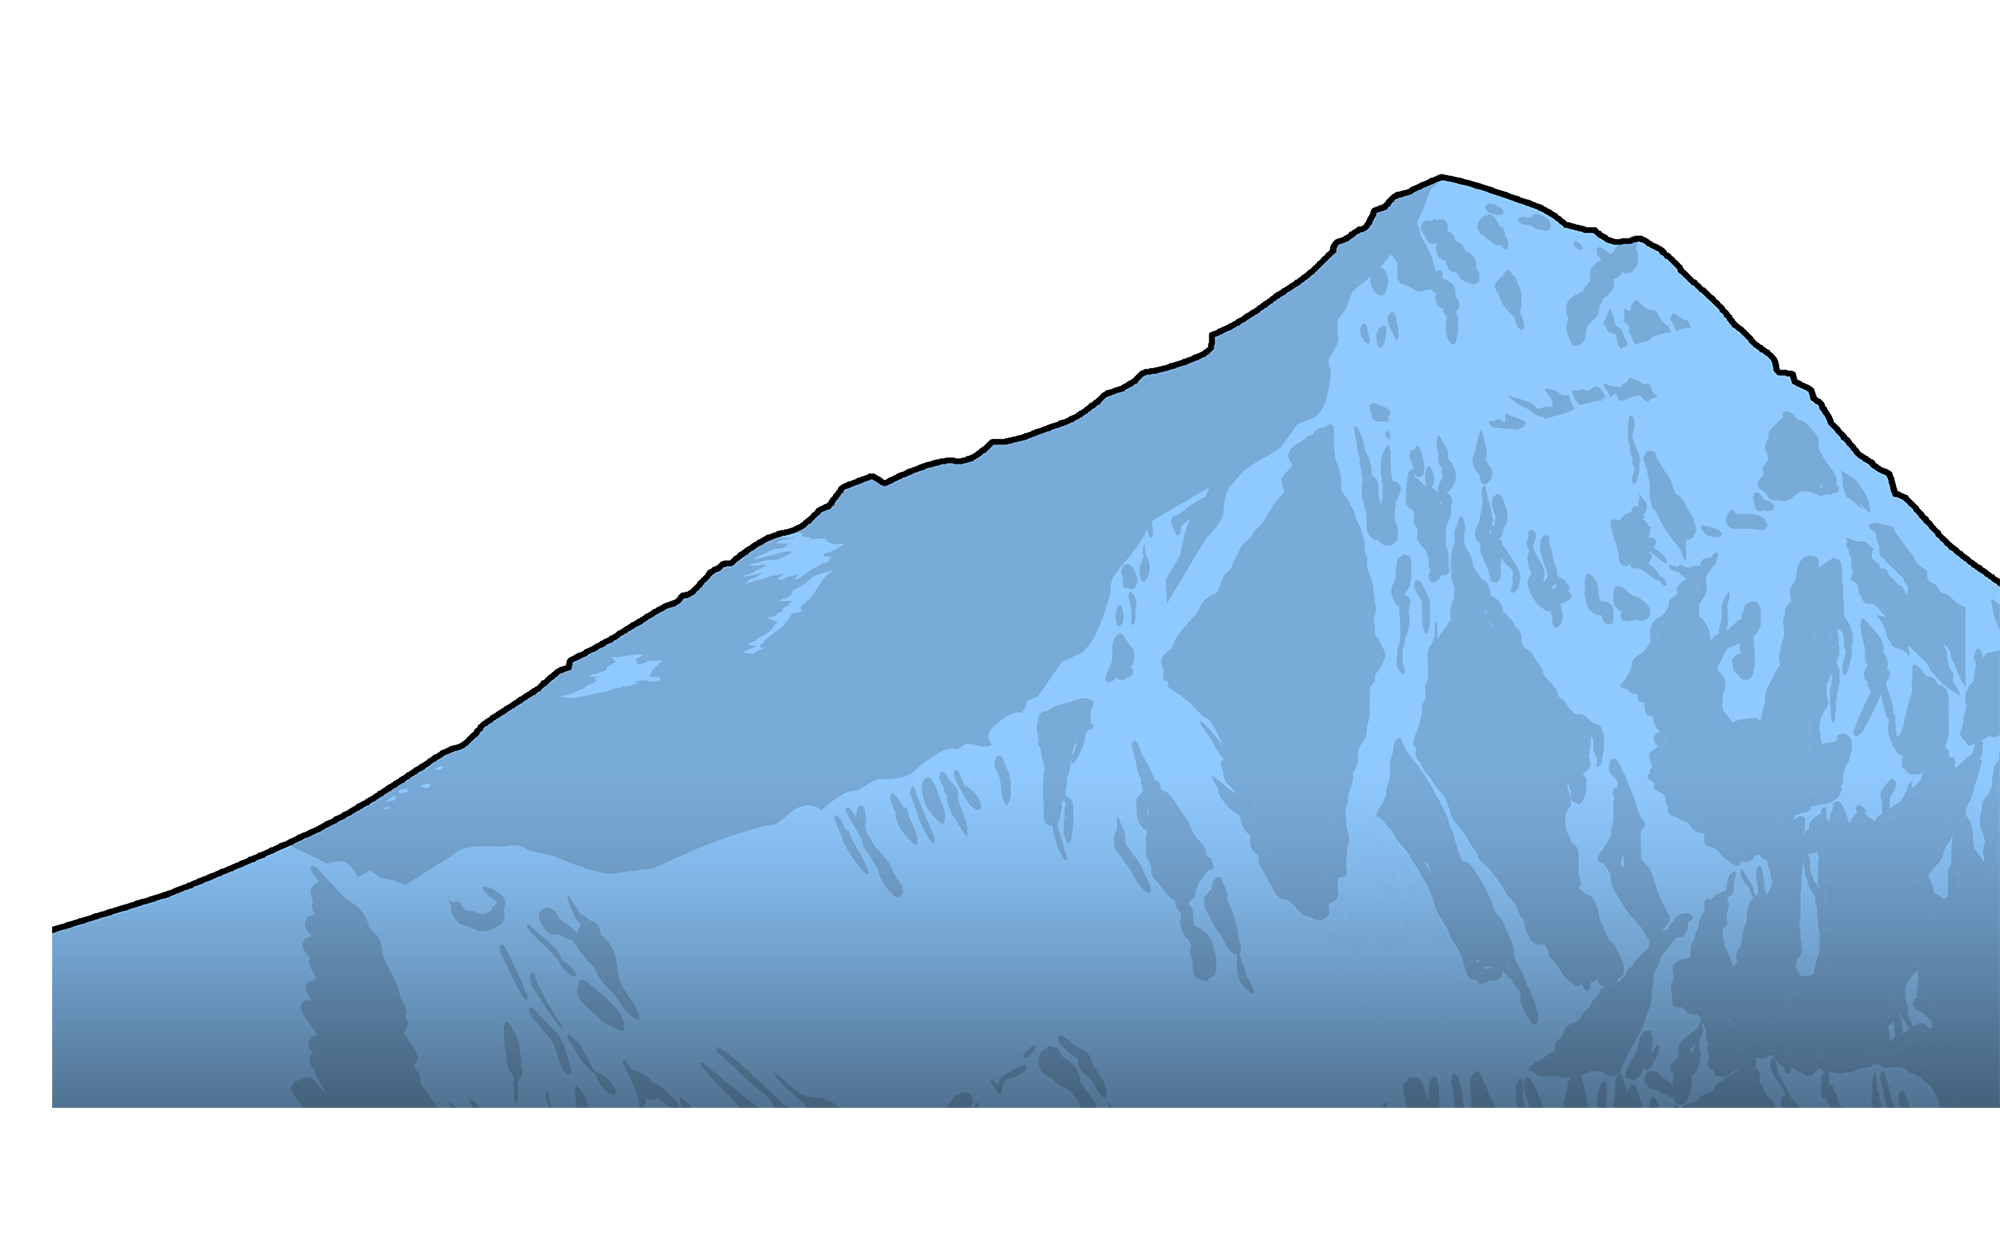 Mountain clipart mountain slope. Climbing fatalities copy